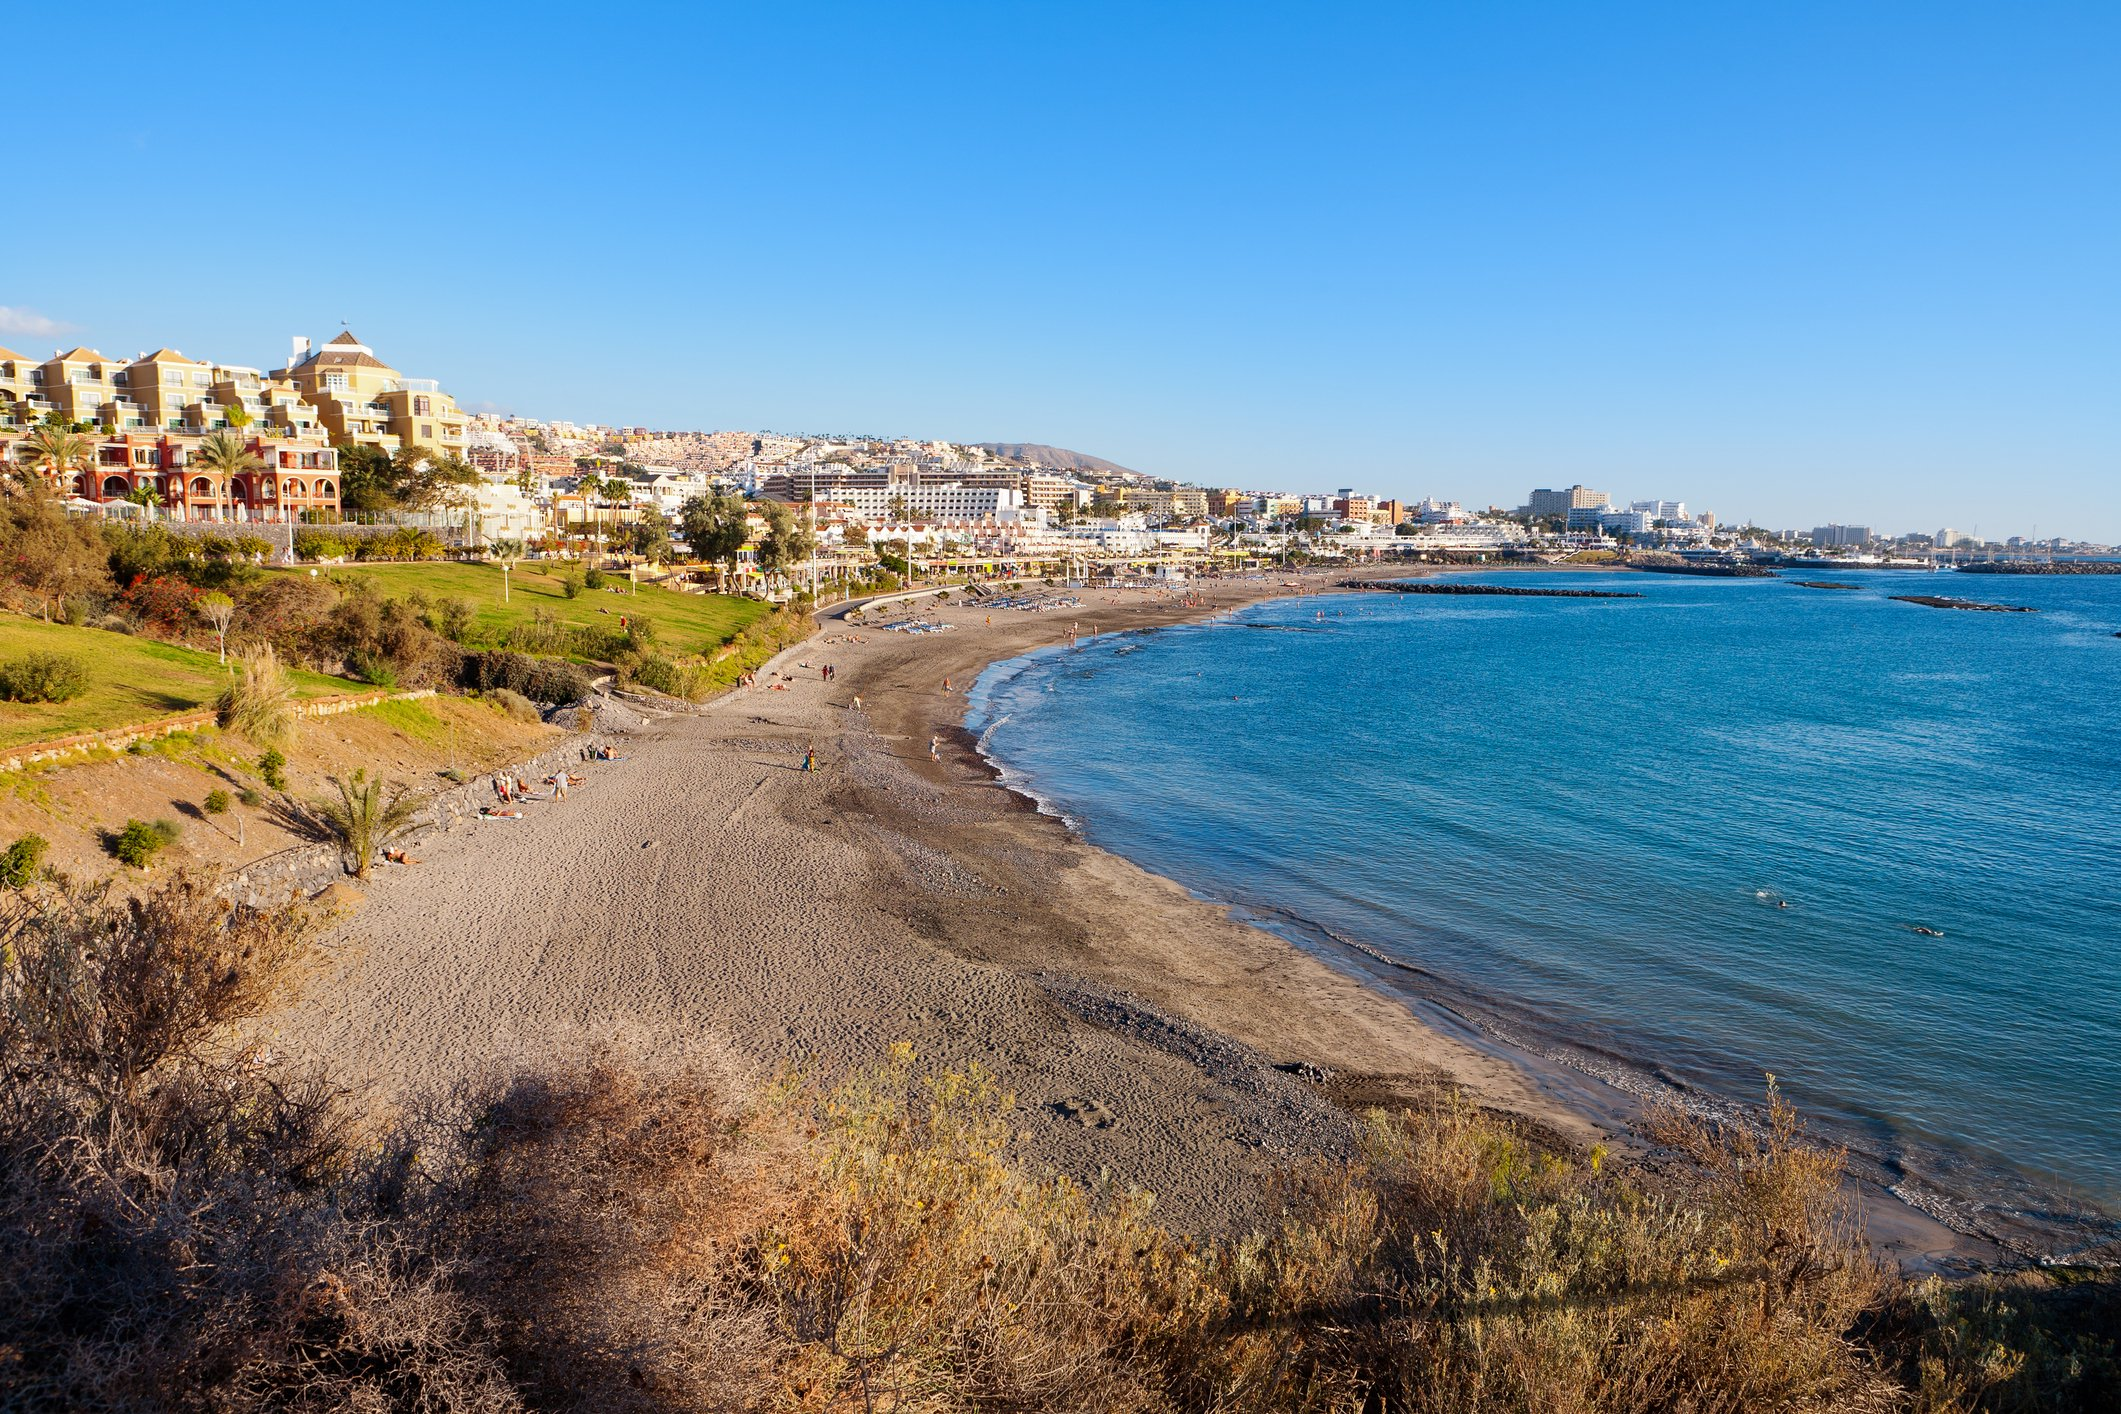 Tenerife: Highly Rated Self Catering Beach Escape to Costa Adeje